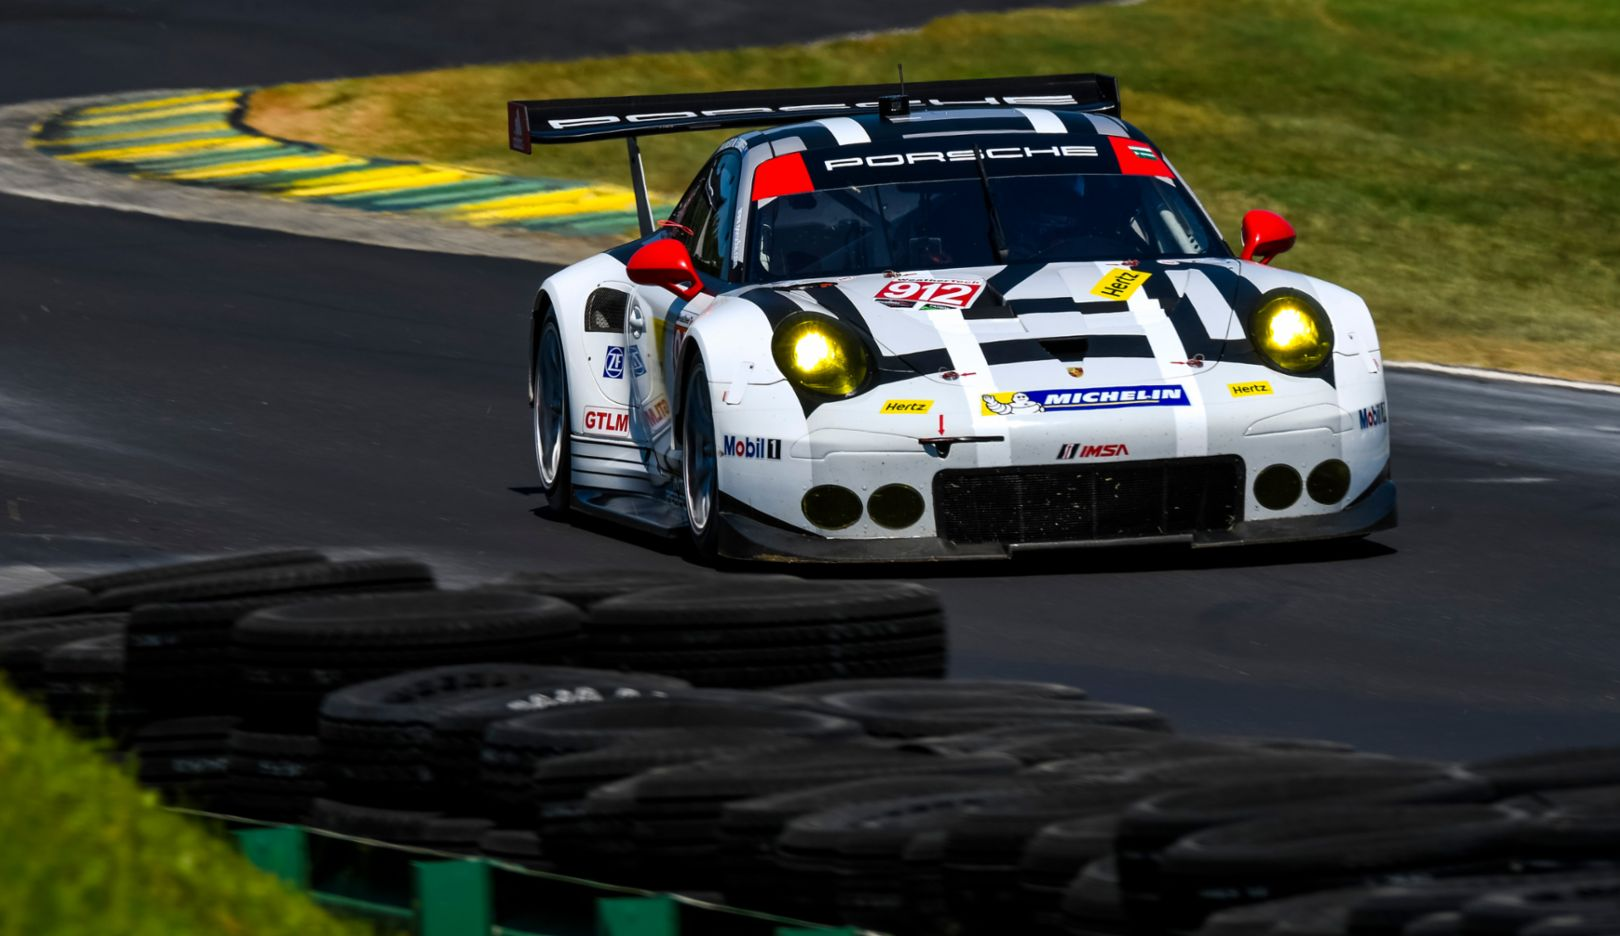 Porsche 911 RSR, IMSA, Virginia International Raceway, Alton, 2016, Porsche AG